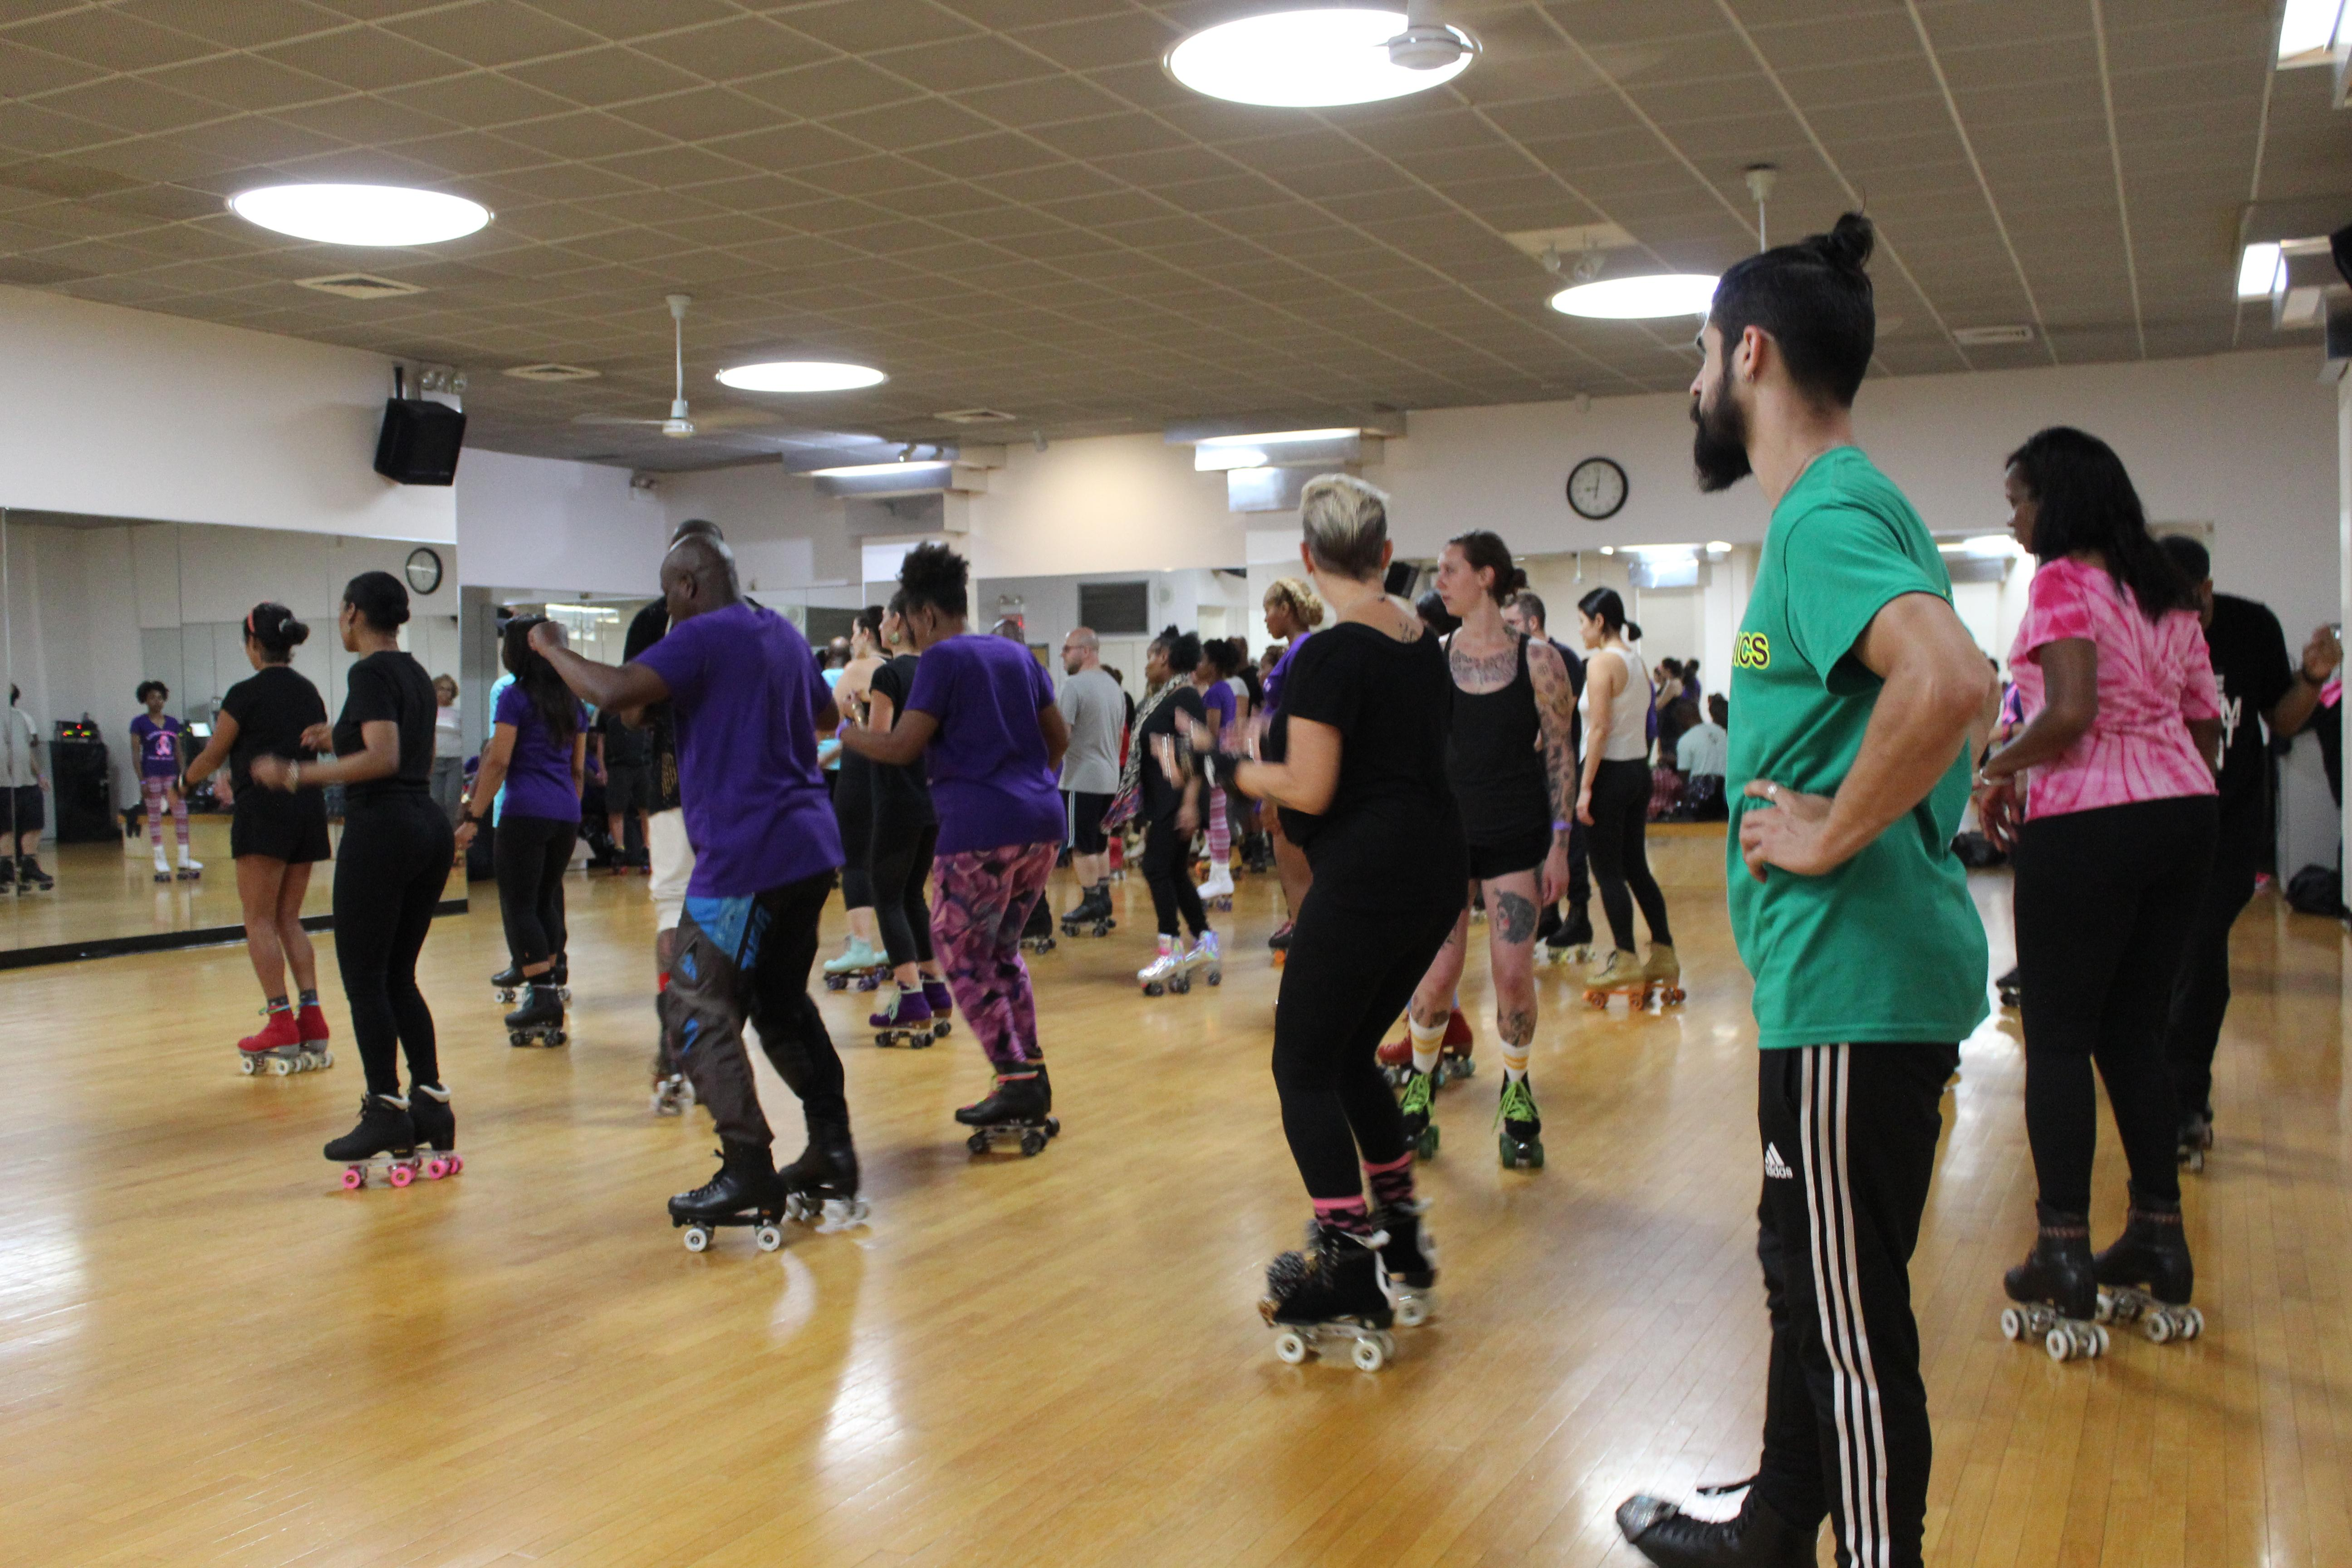 Saturday SKATEROBICS (Skills class) Learn How to Become a Masterful Skater